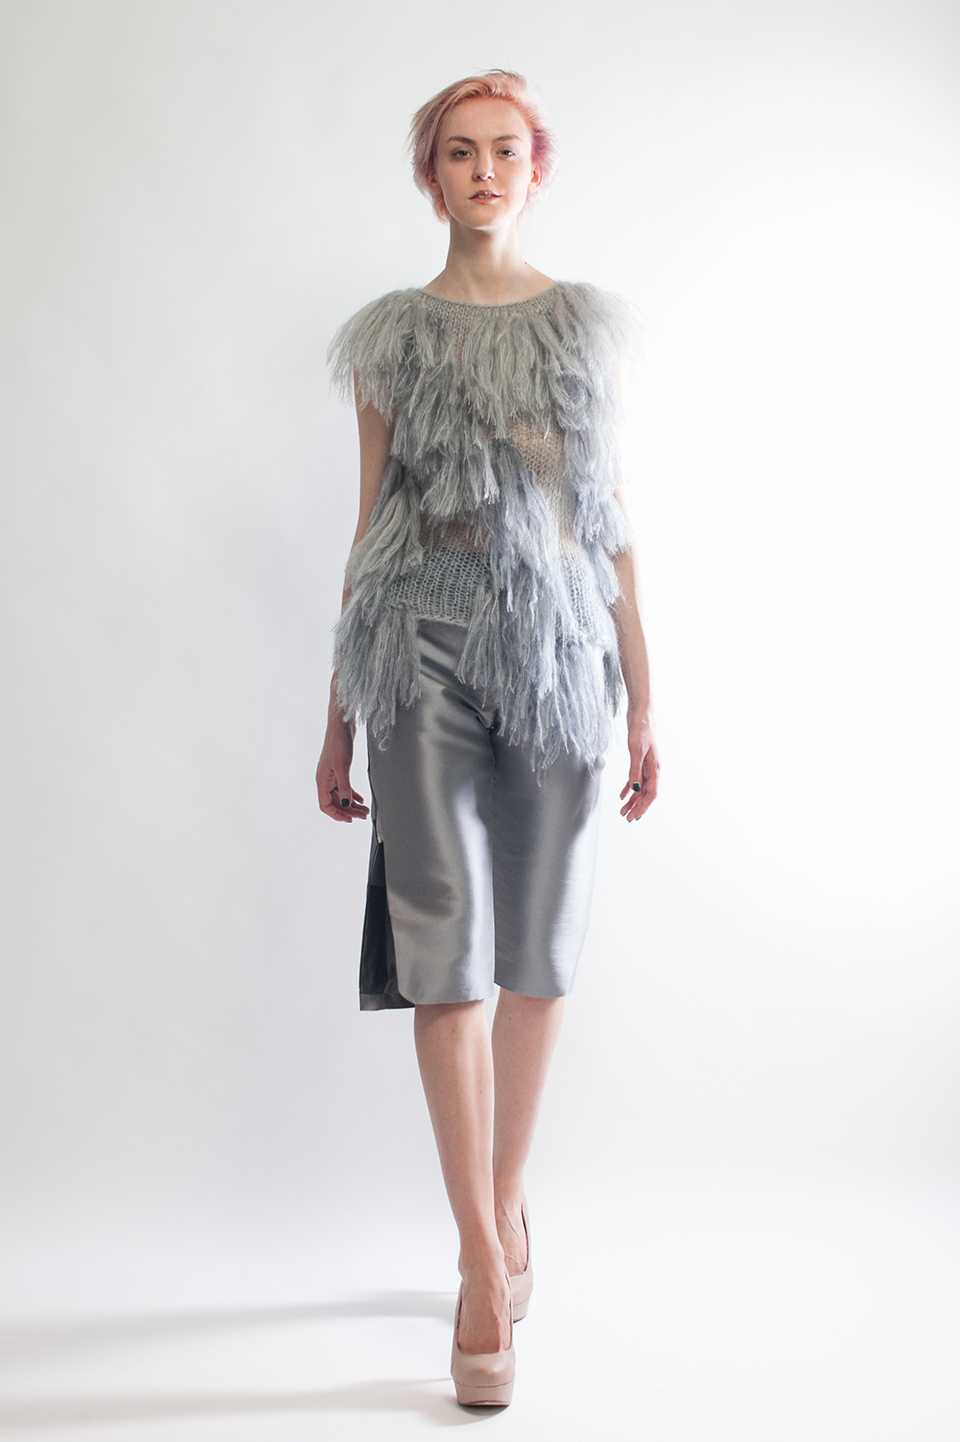 Claire Andrew Designer Fashion AW14 5 - Grey shaggy fringed knit with silk zibeline cropped trouser